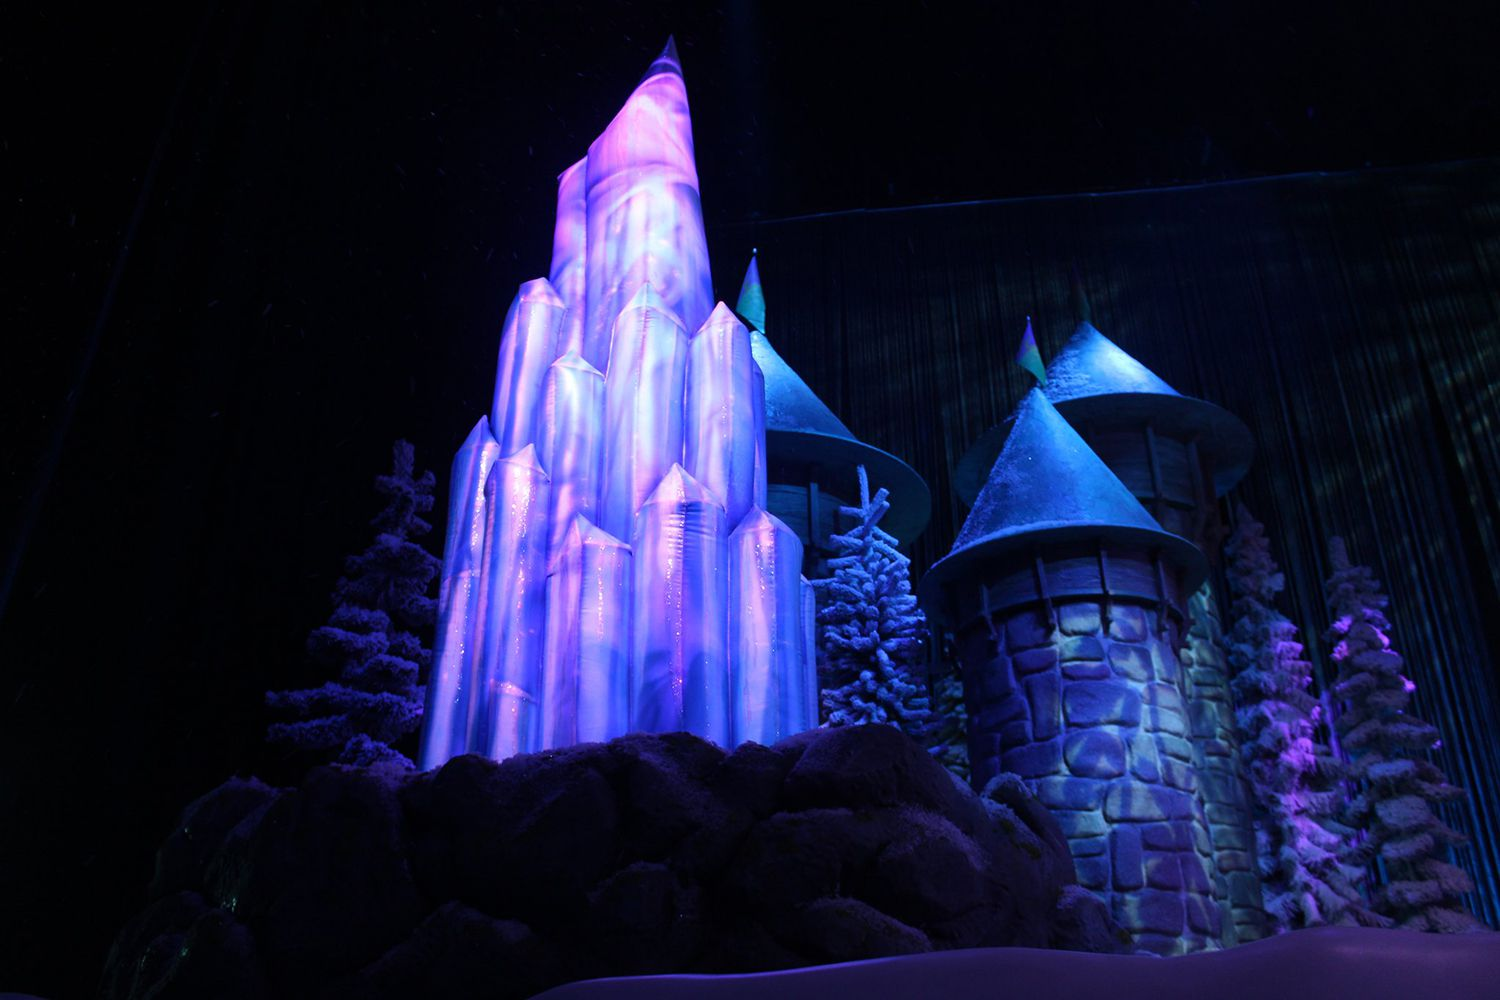 The castle set of Frozen on the stage at Disney's Hollywood Studios